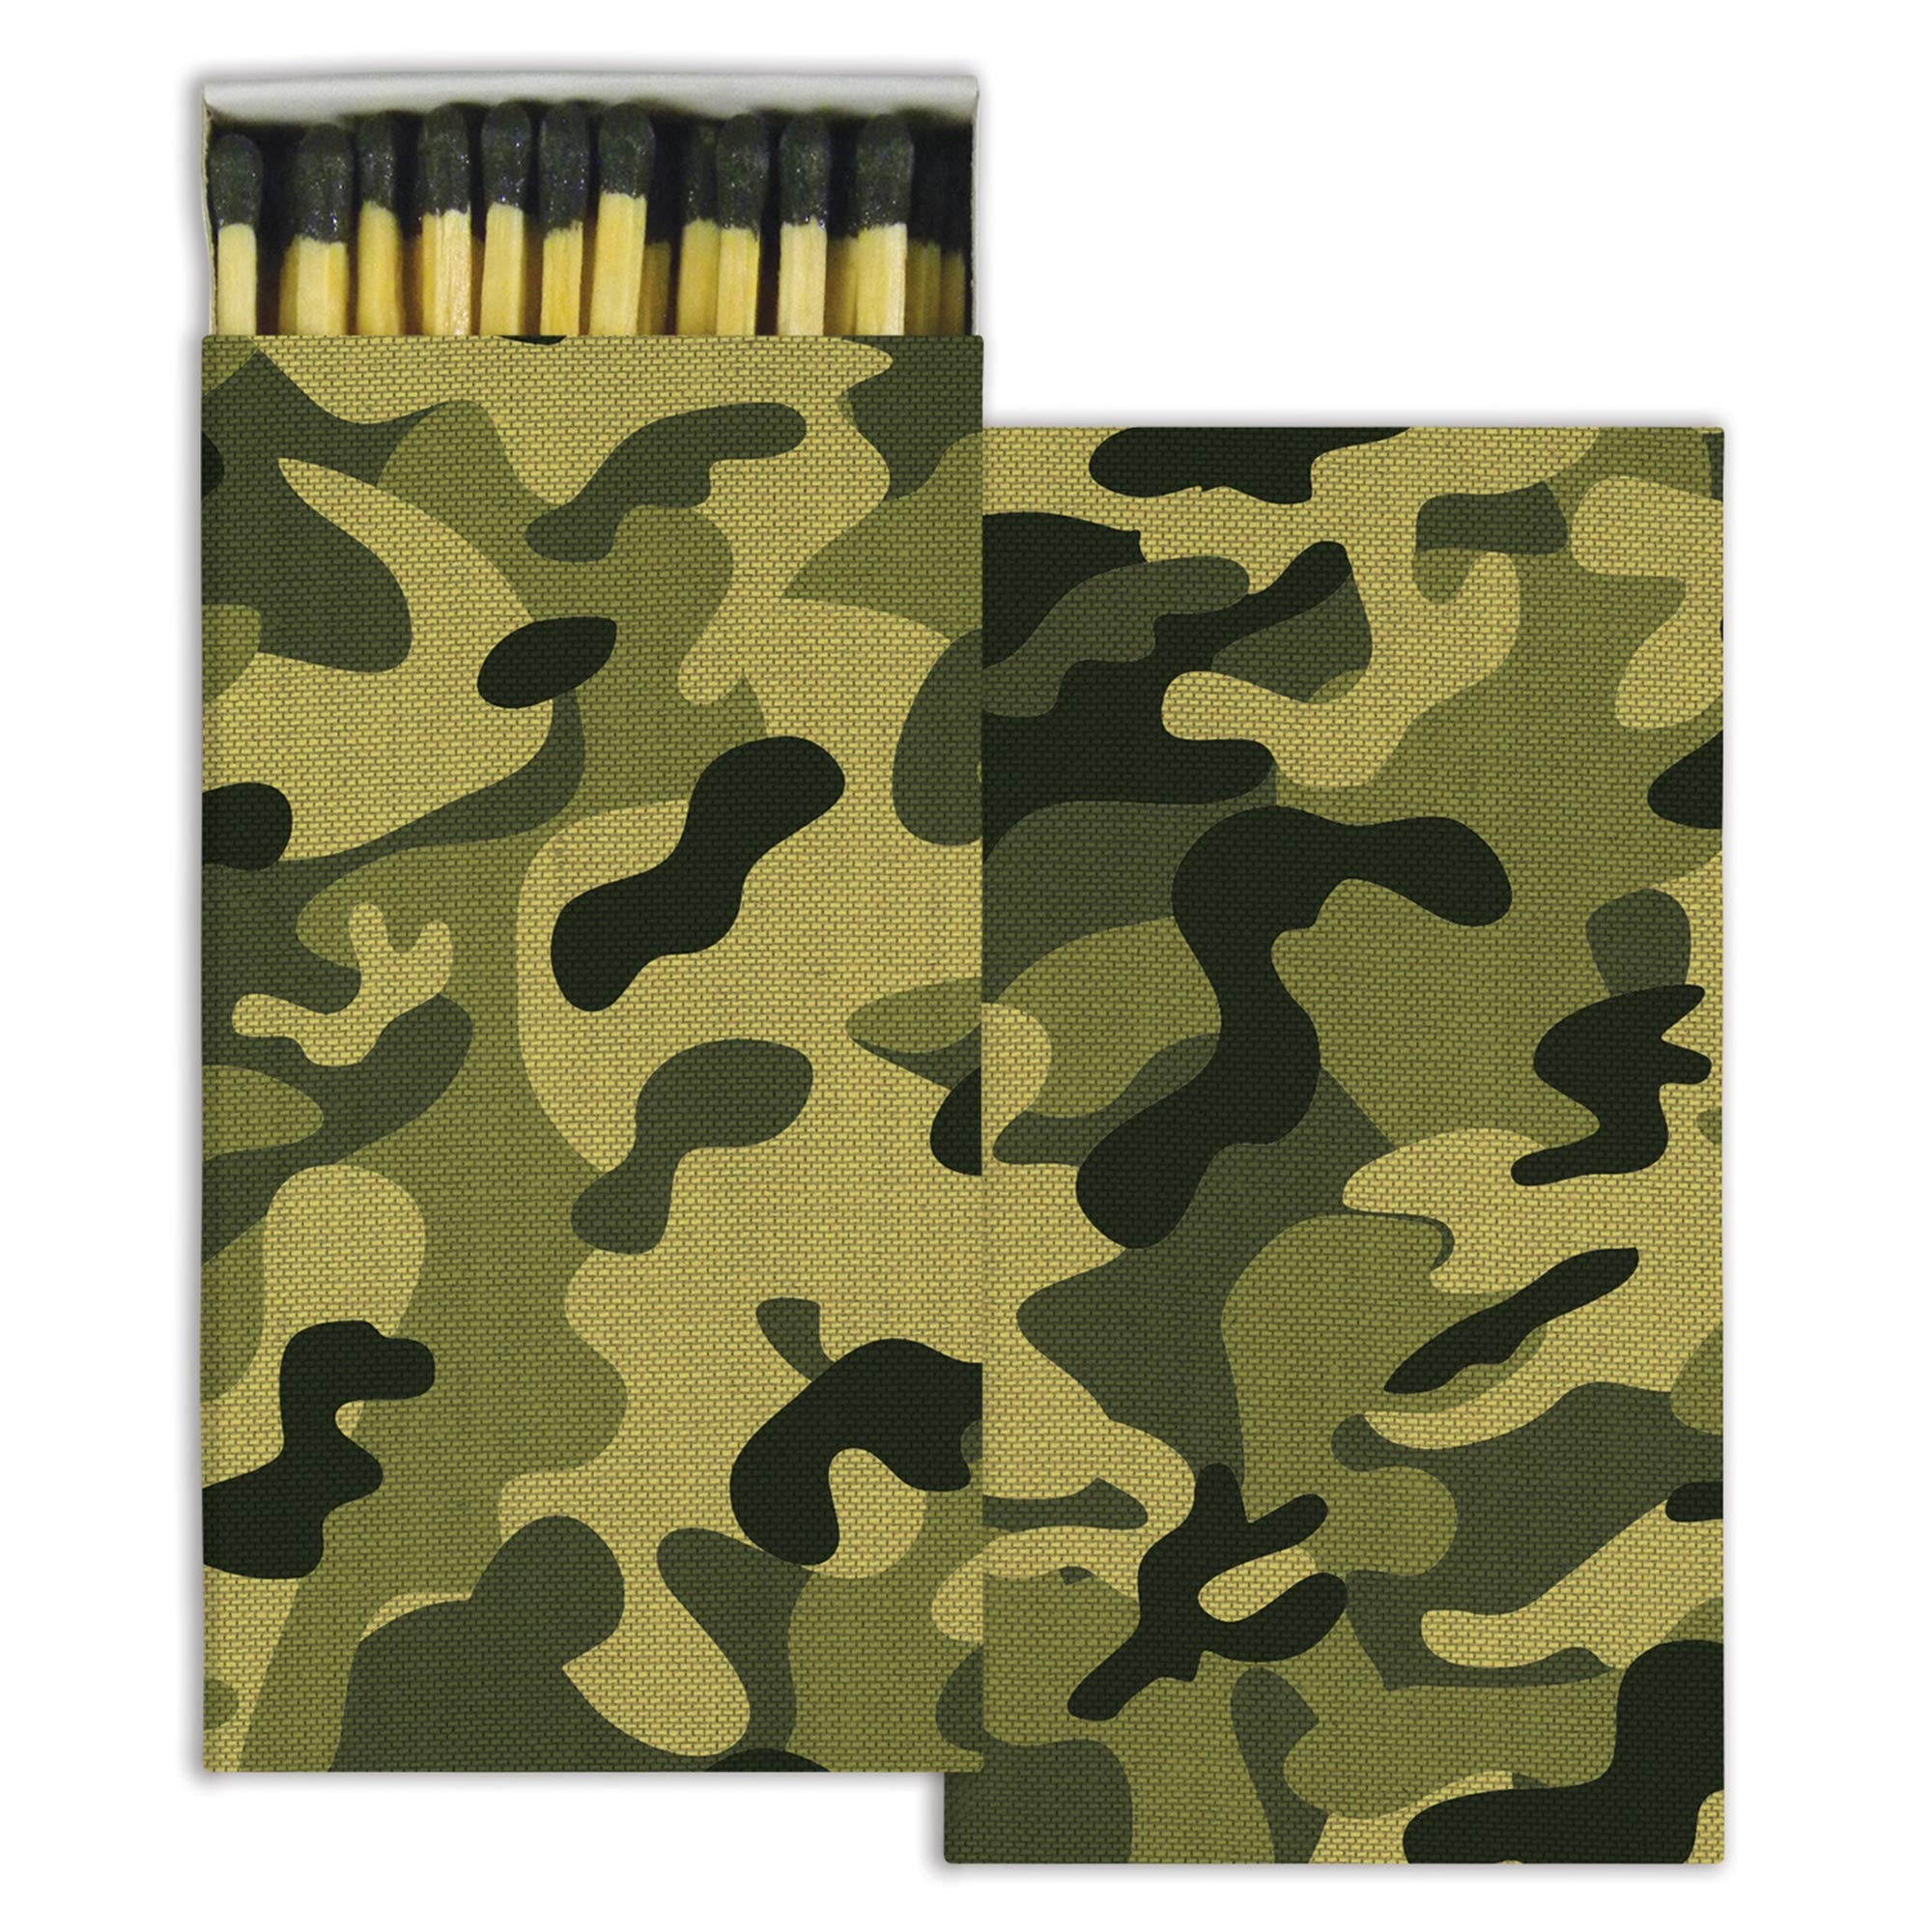 Camouflage Match Boxes with Wooden Matches (Set of 10)